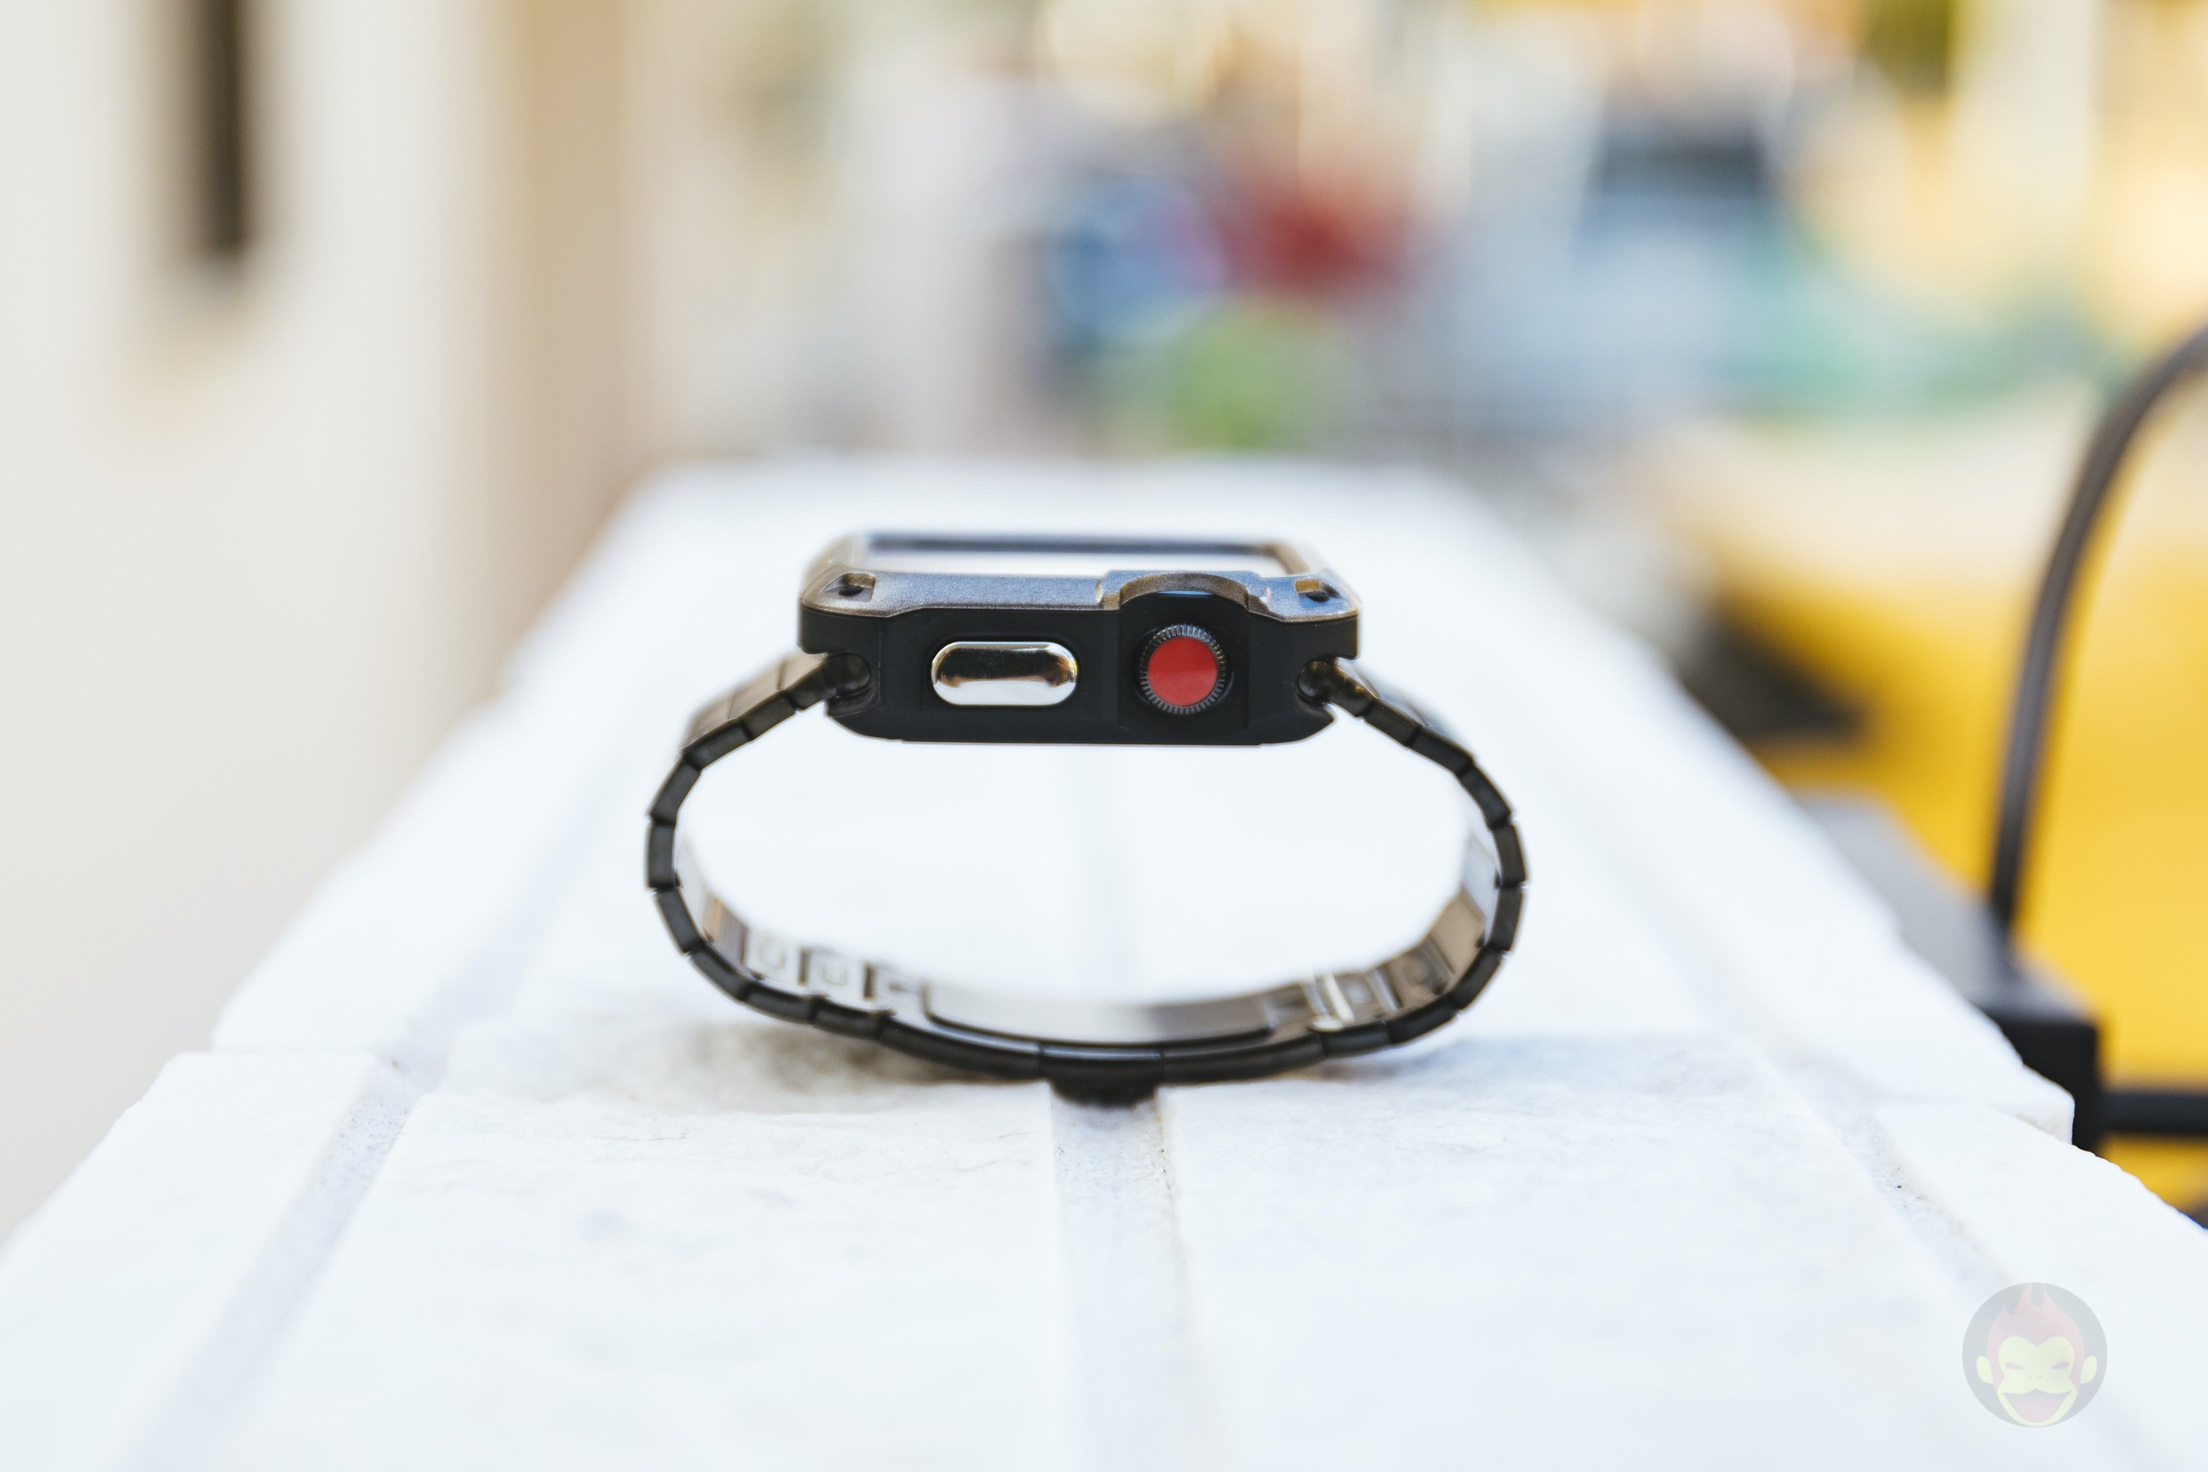 Apple-Watch-Series-3-LTE-Review-05.jpg